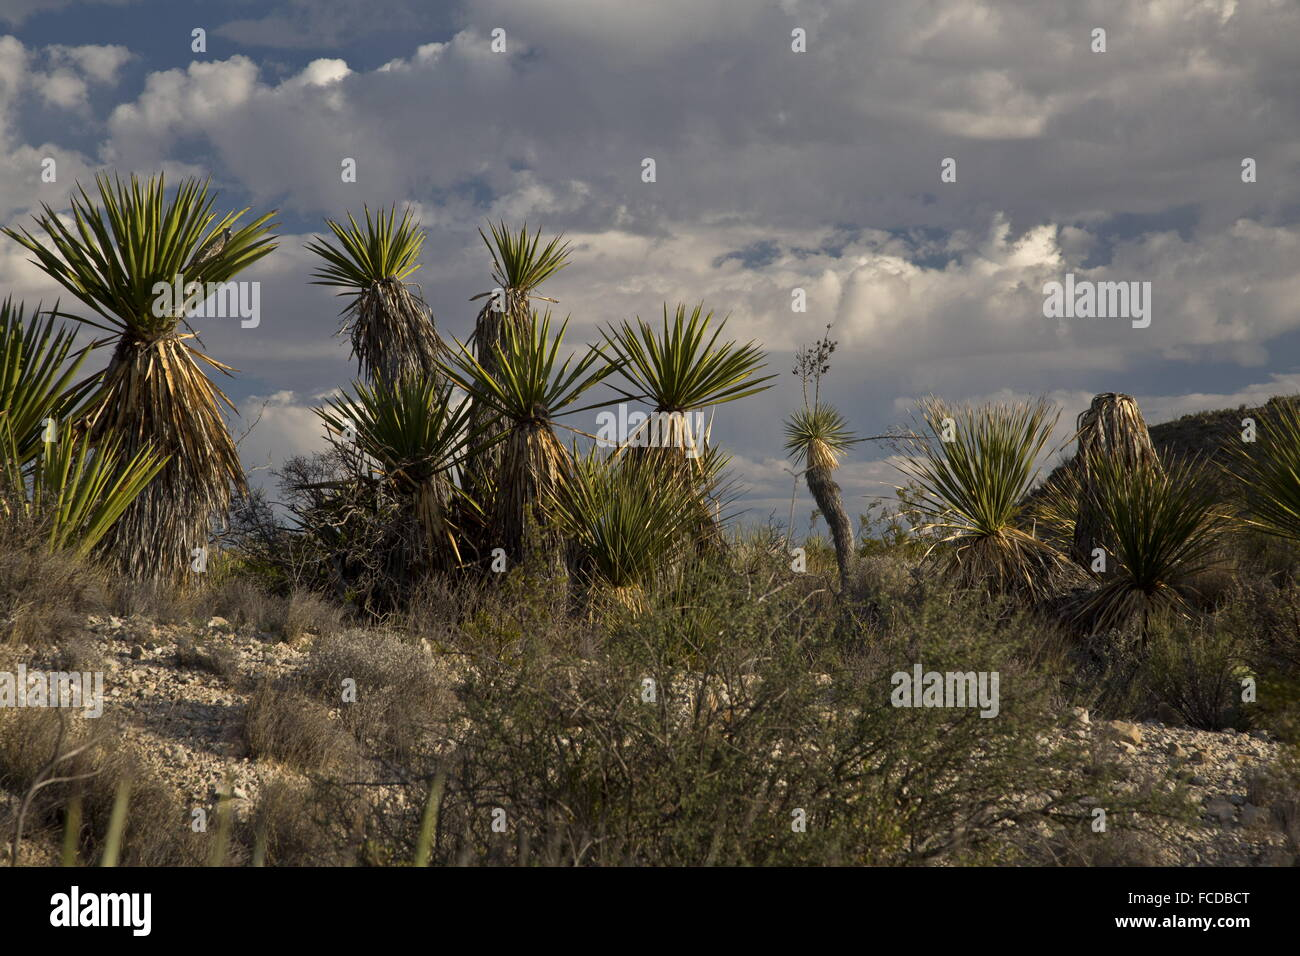 Spanish dagger or Torrey Yucca, Yucca faxoniana, on Dagger Flats, Big Bend National Park, Texas - Stock Image